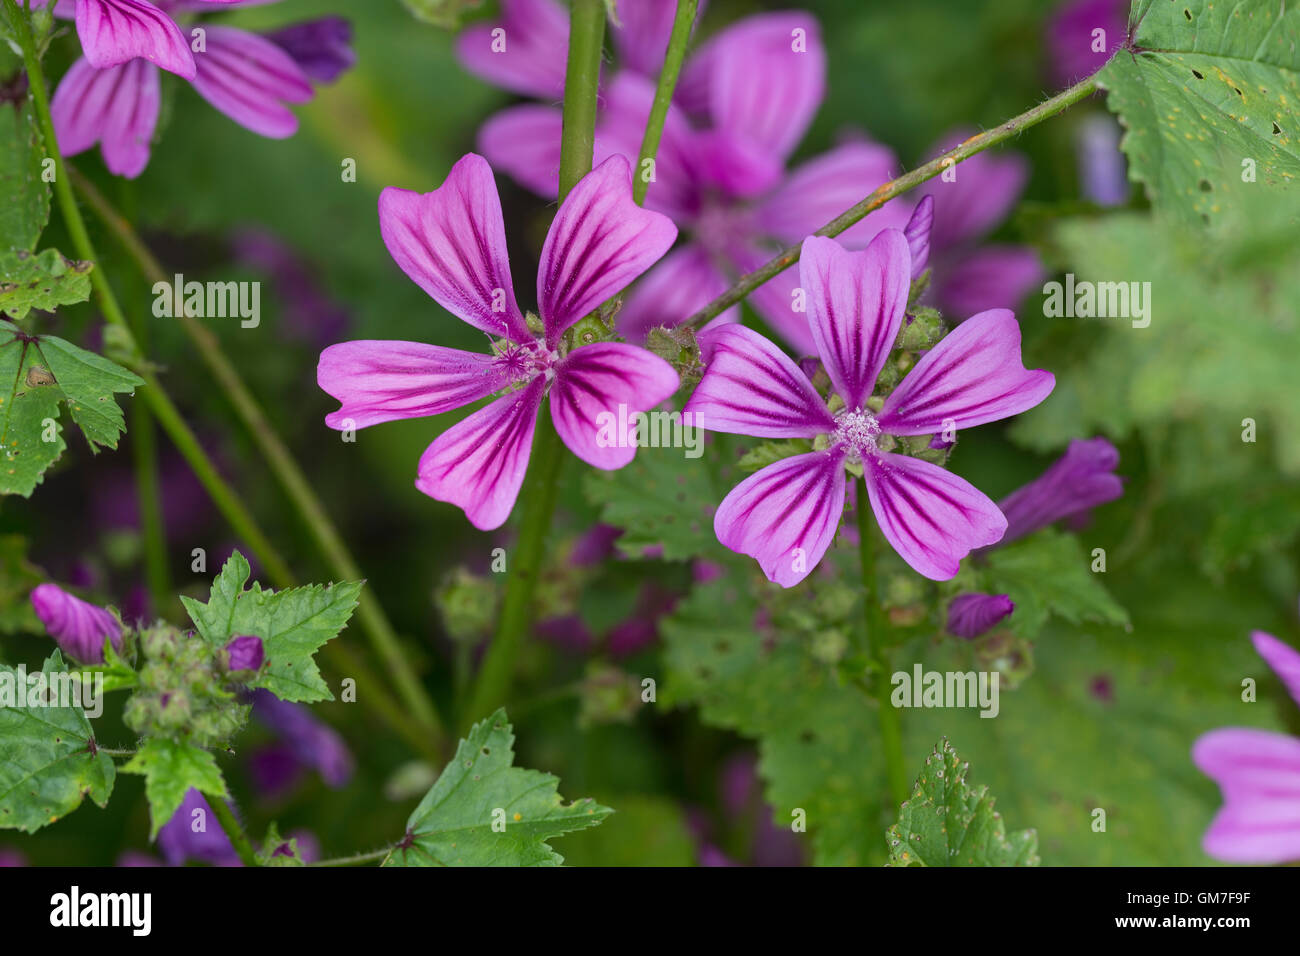 Wilde Malve, Große Käsepappel, Malva sylvestris, Malva silvestris, common mallow, cheeses, high mallow, tall mallow, Stock Photo